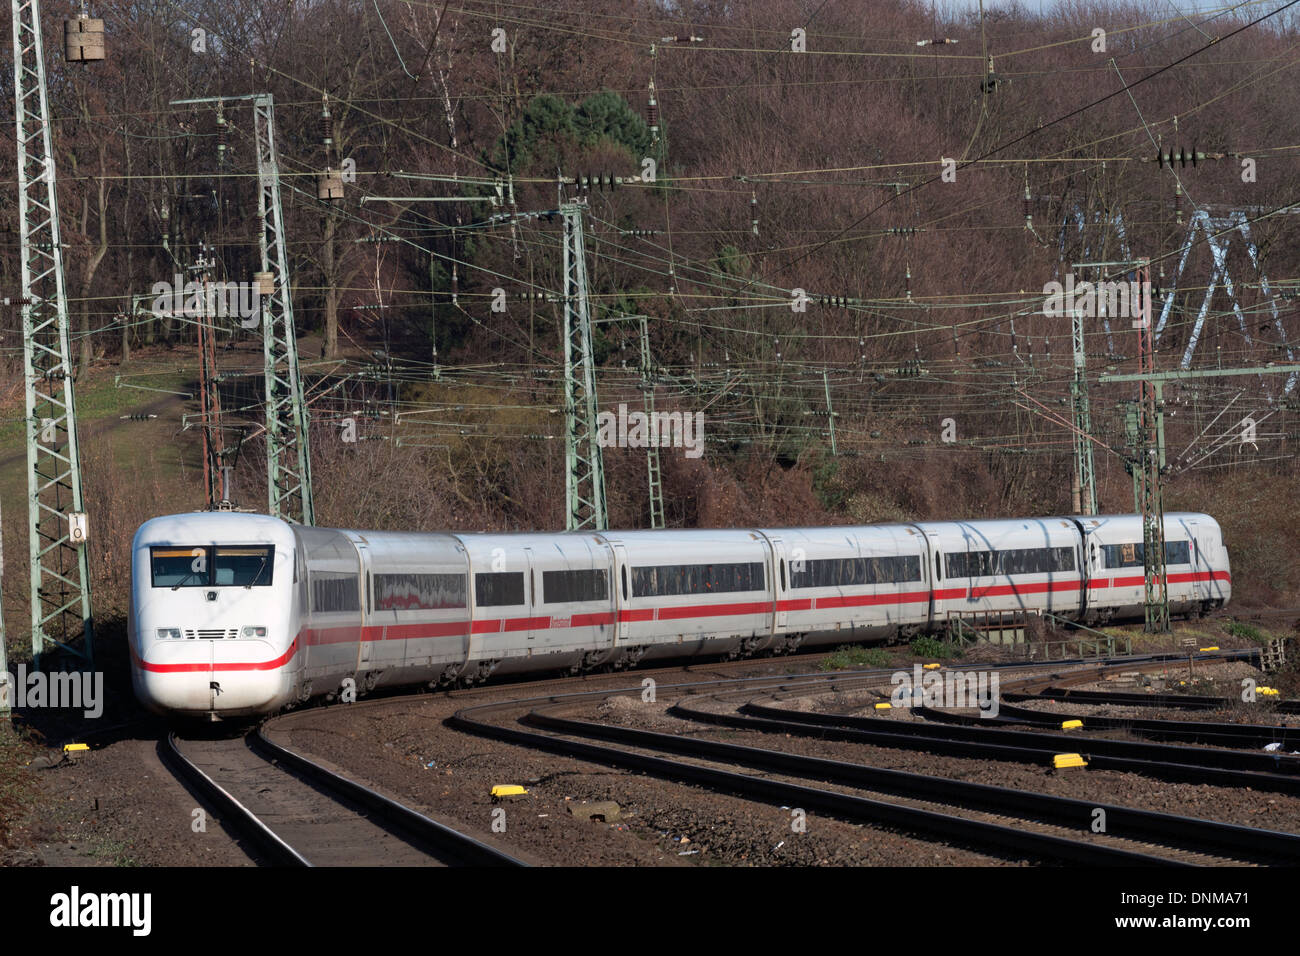 German Railways ICE2 (InterCity Express) passenger train - Stock Image